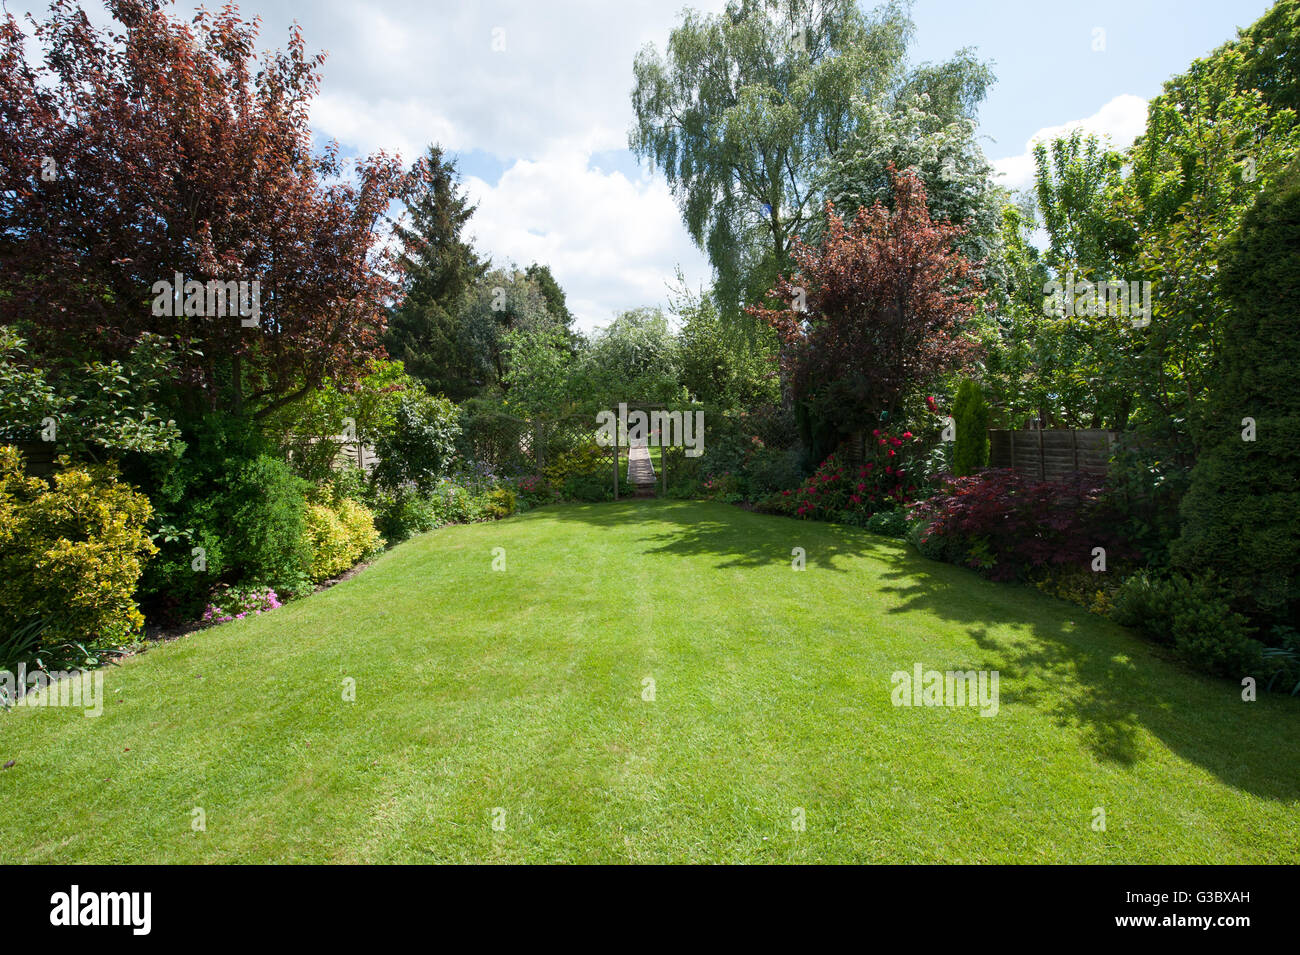 lawn and trees in rear garden - Stock Image